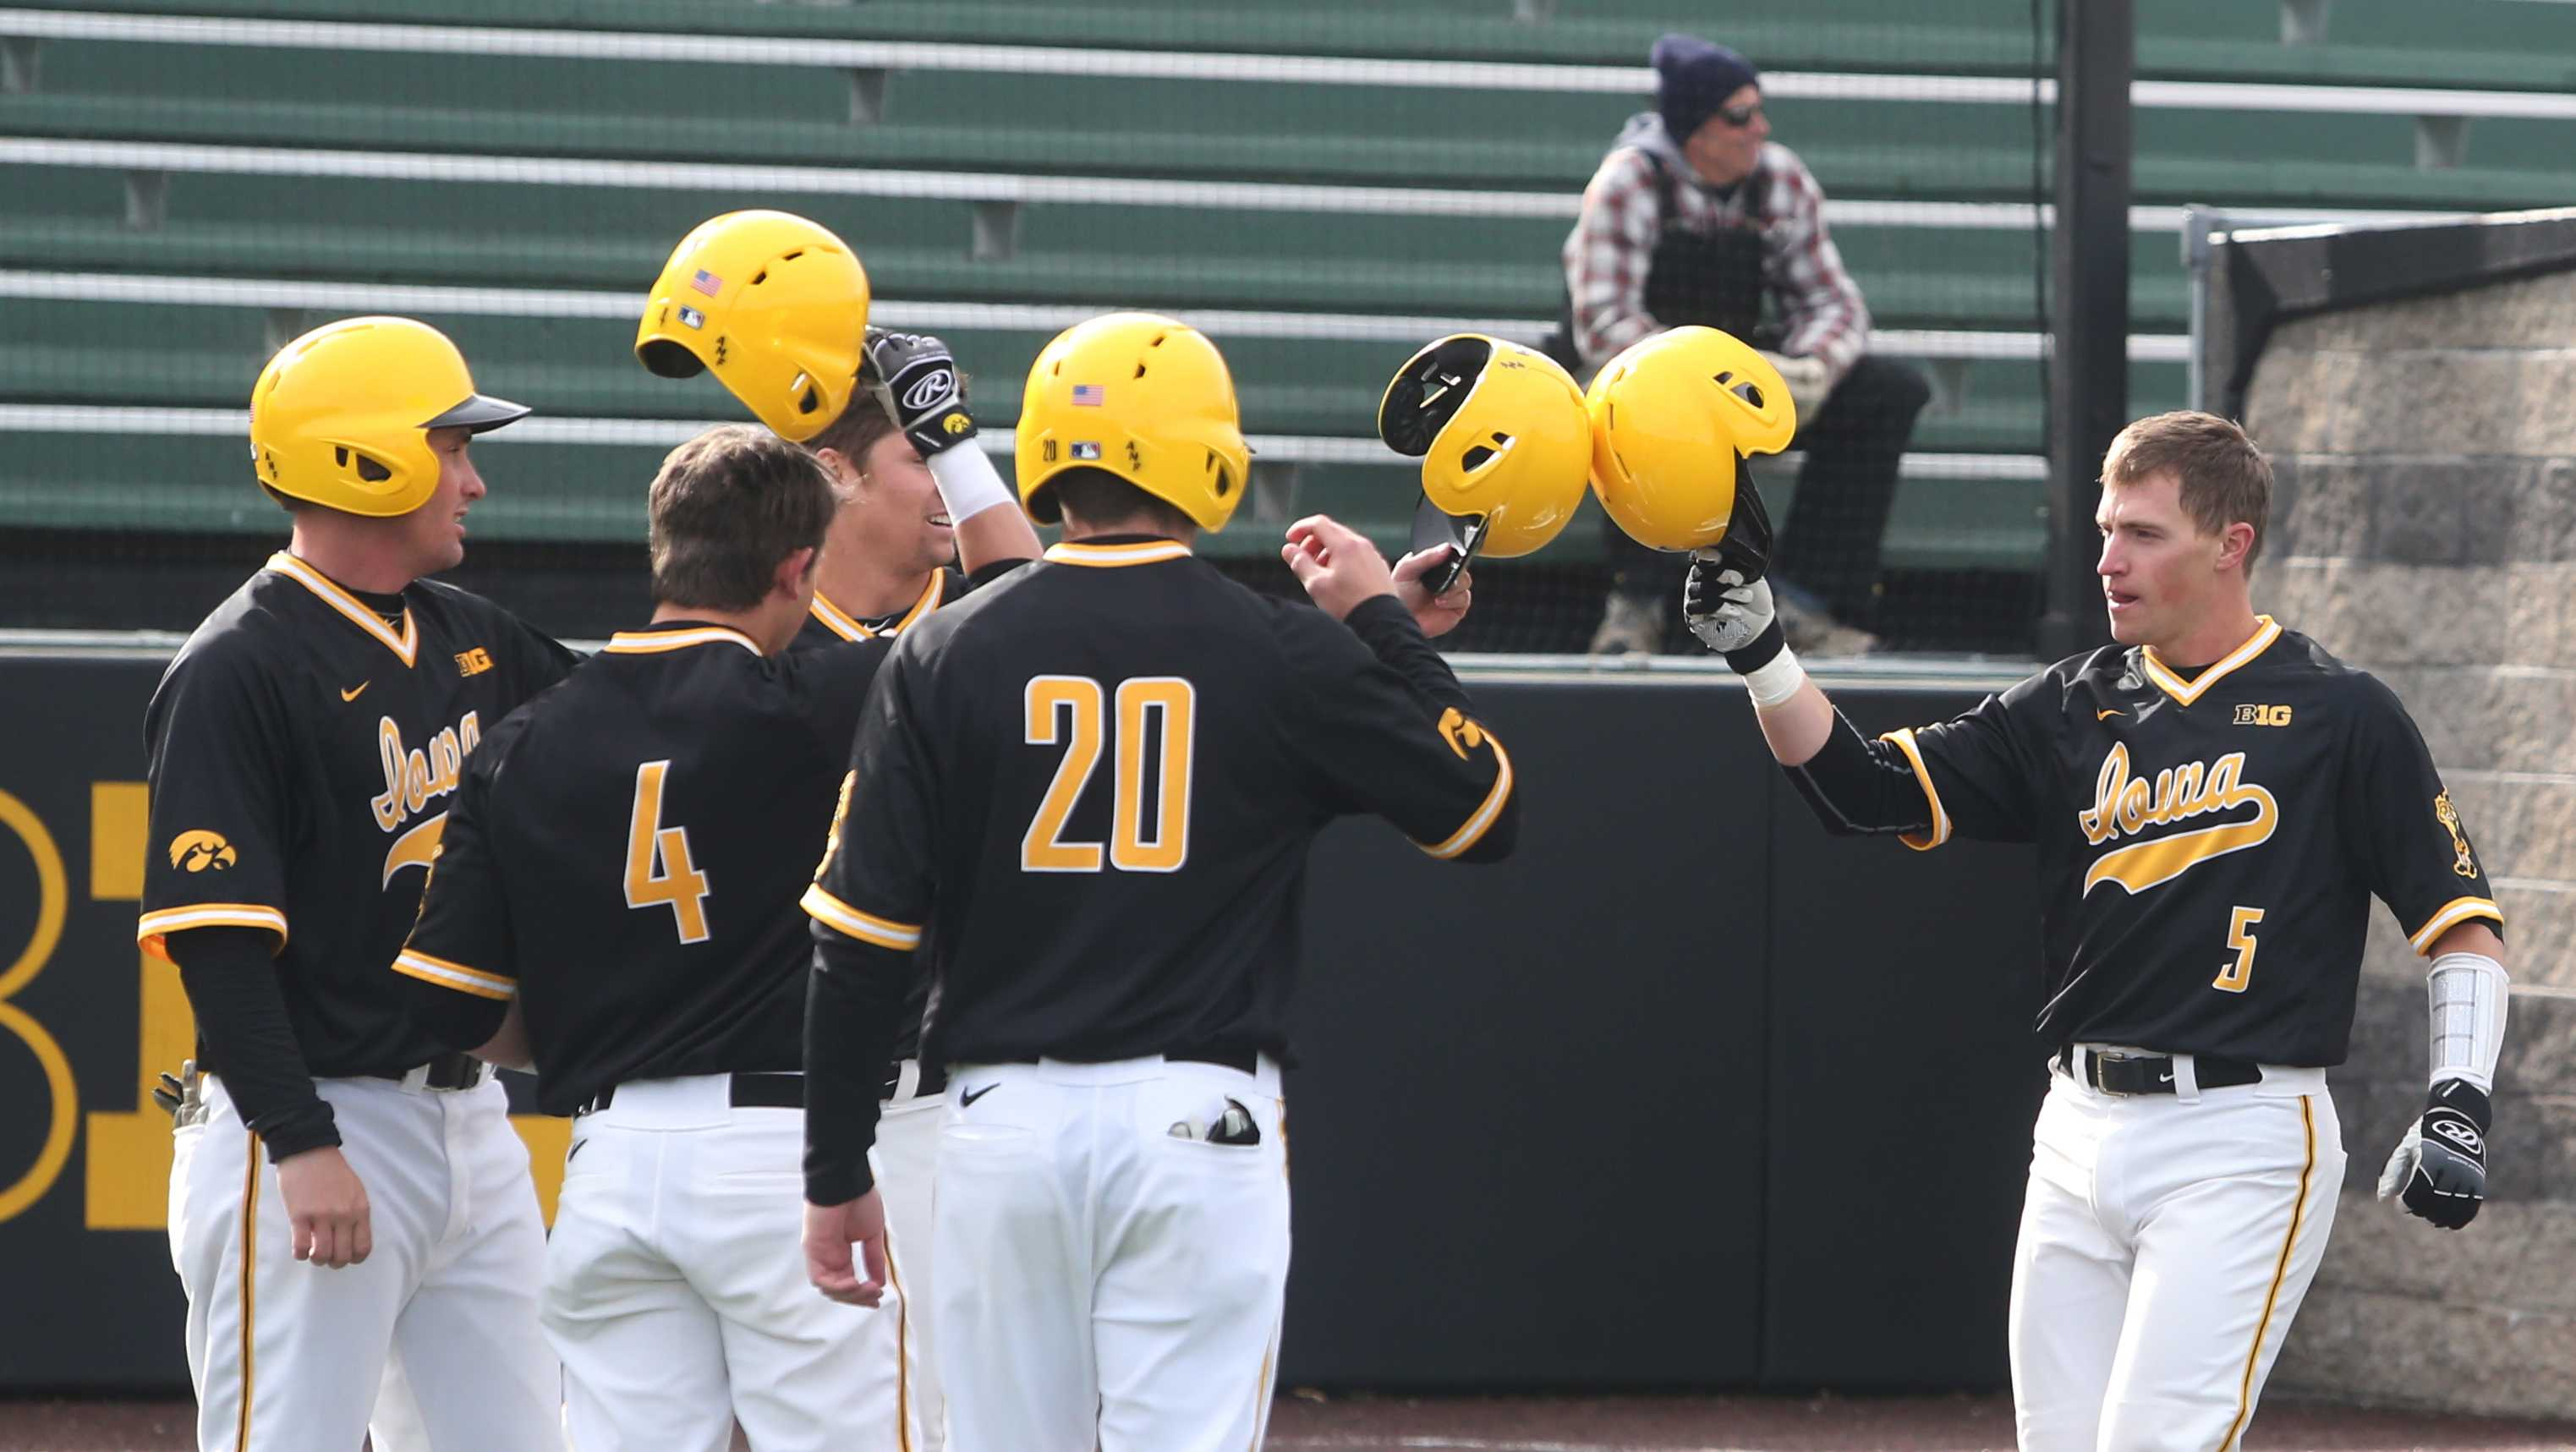 Iowa catcher Matt Hoeg celebrates with teammates after his grand slam during the game between the Bradley Braves and the Iowa Hawkeyes in Iowa City at Duane Banks Field on Wednesday, March 22, 2017. The Hawkeyes bats came alive to hit two grand slams and won 12-1. (The Daily Iowan/ Alex Kroeze)